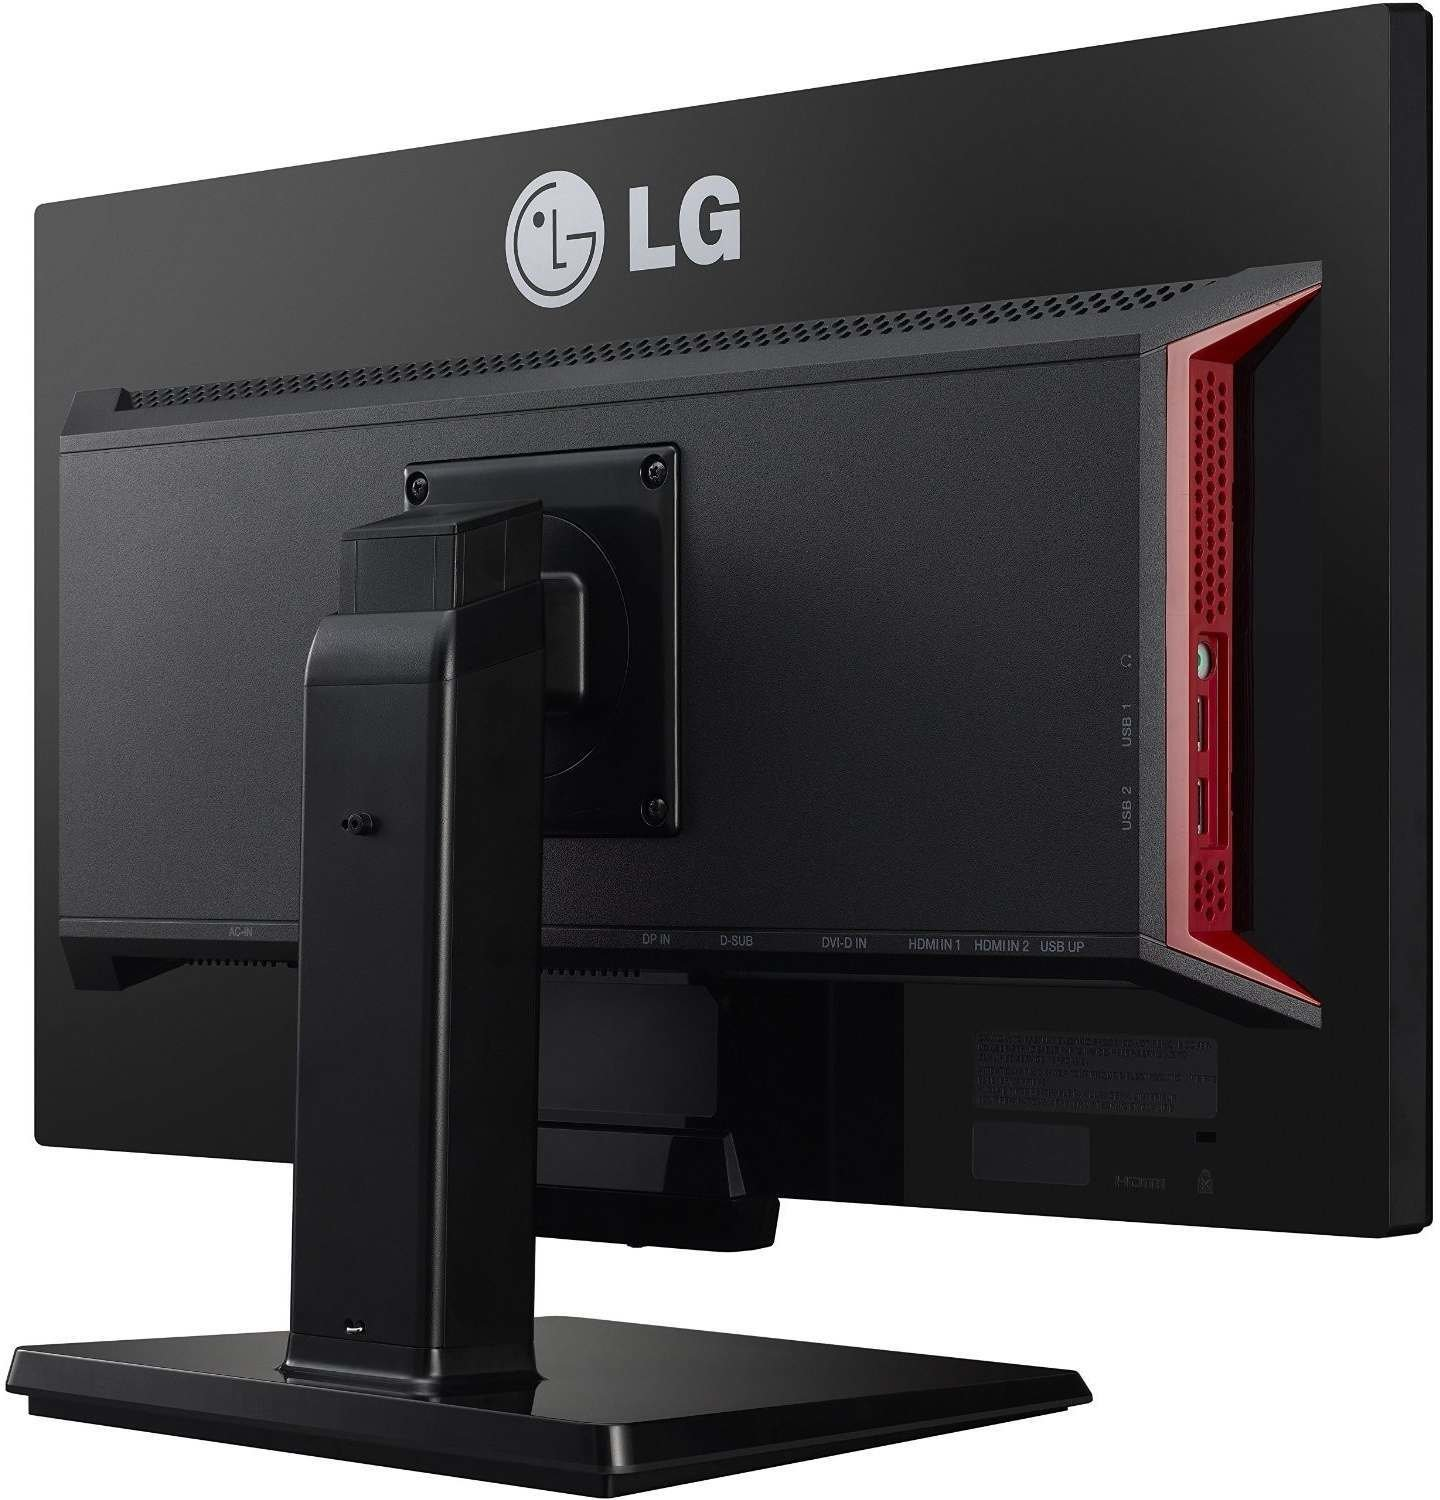 lg electronics 24gm77 b 24 zoll test monitor. Black Bedroom Furniture Sets. Home Design Ideas